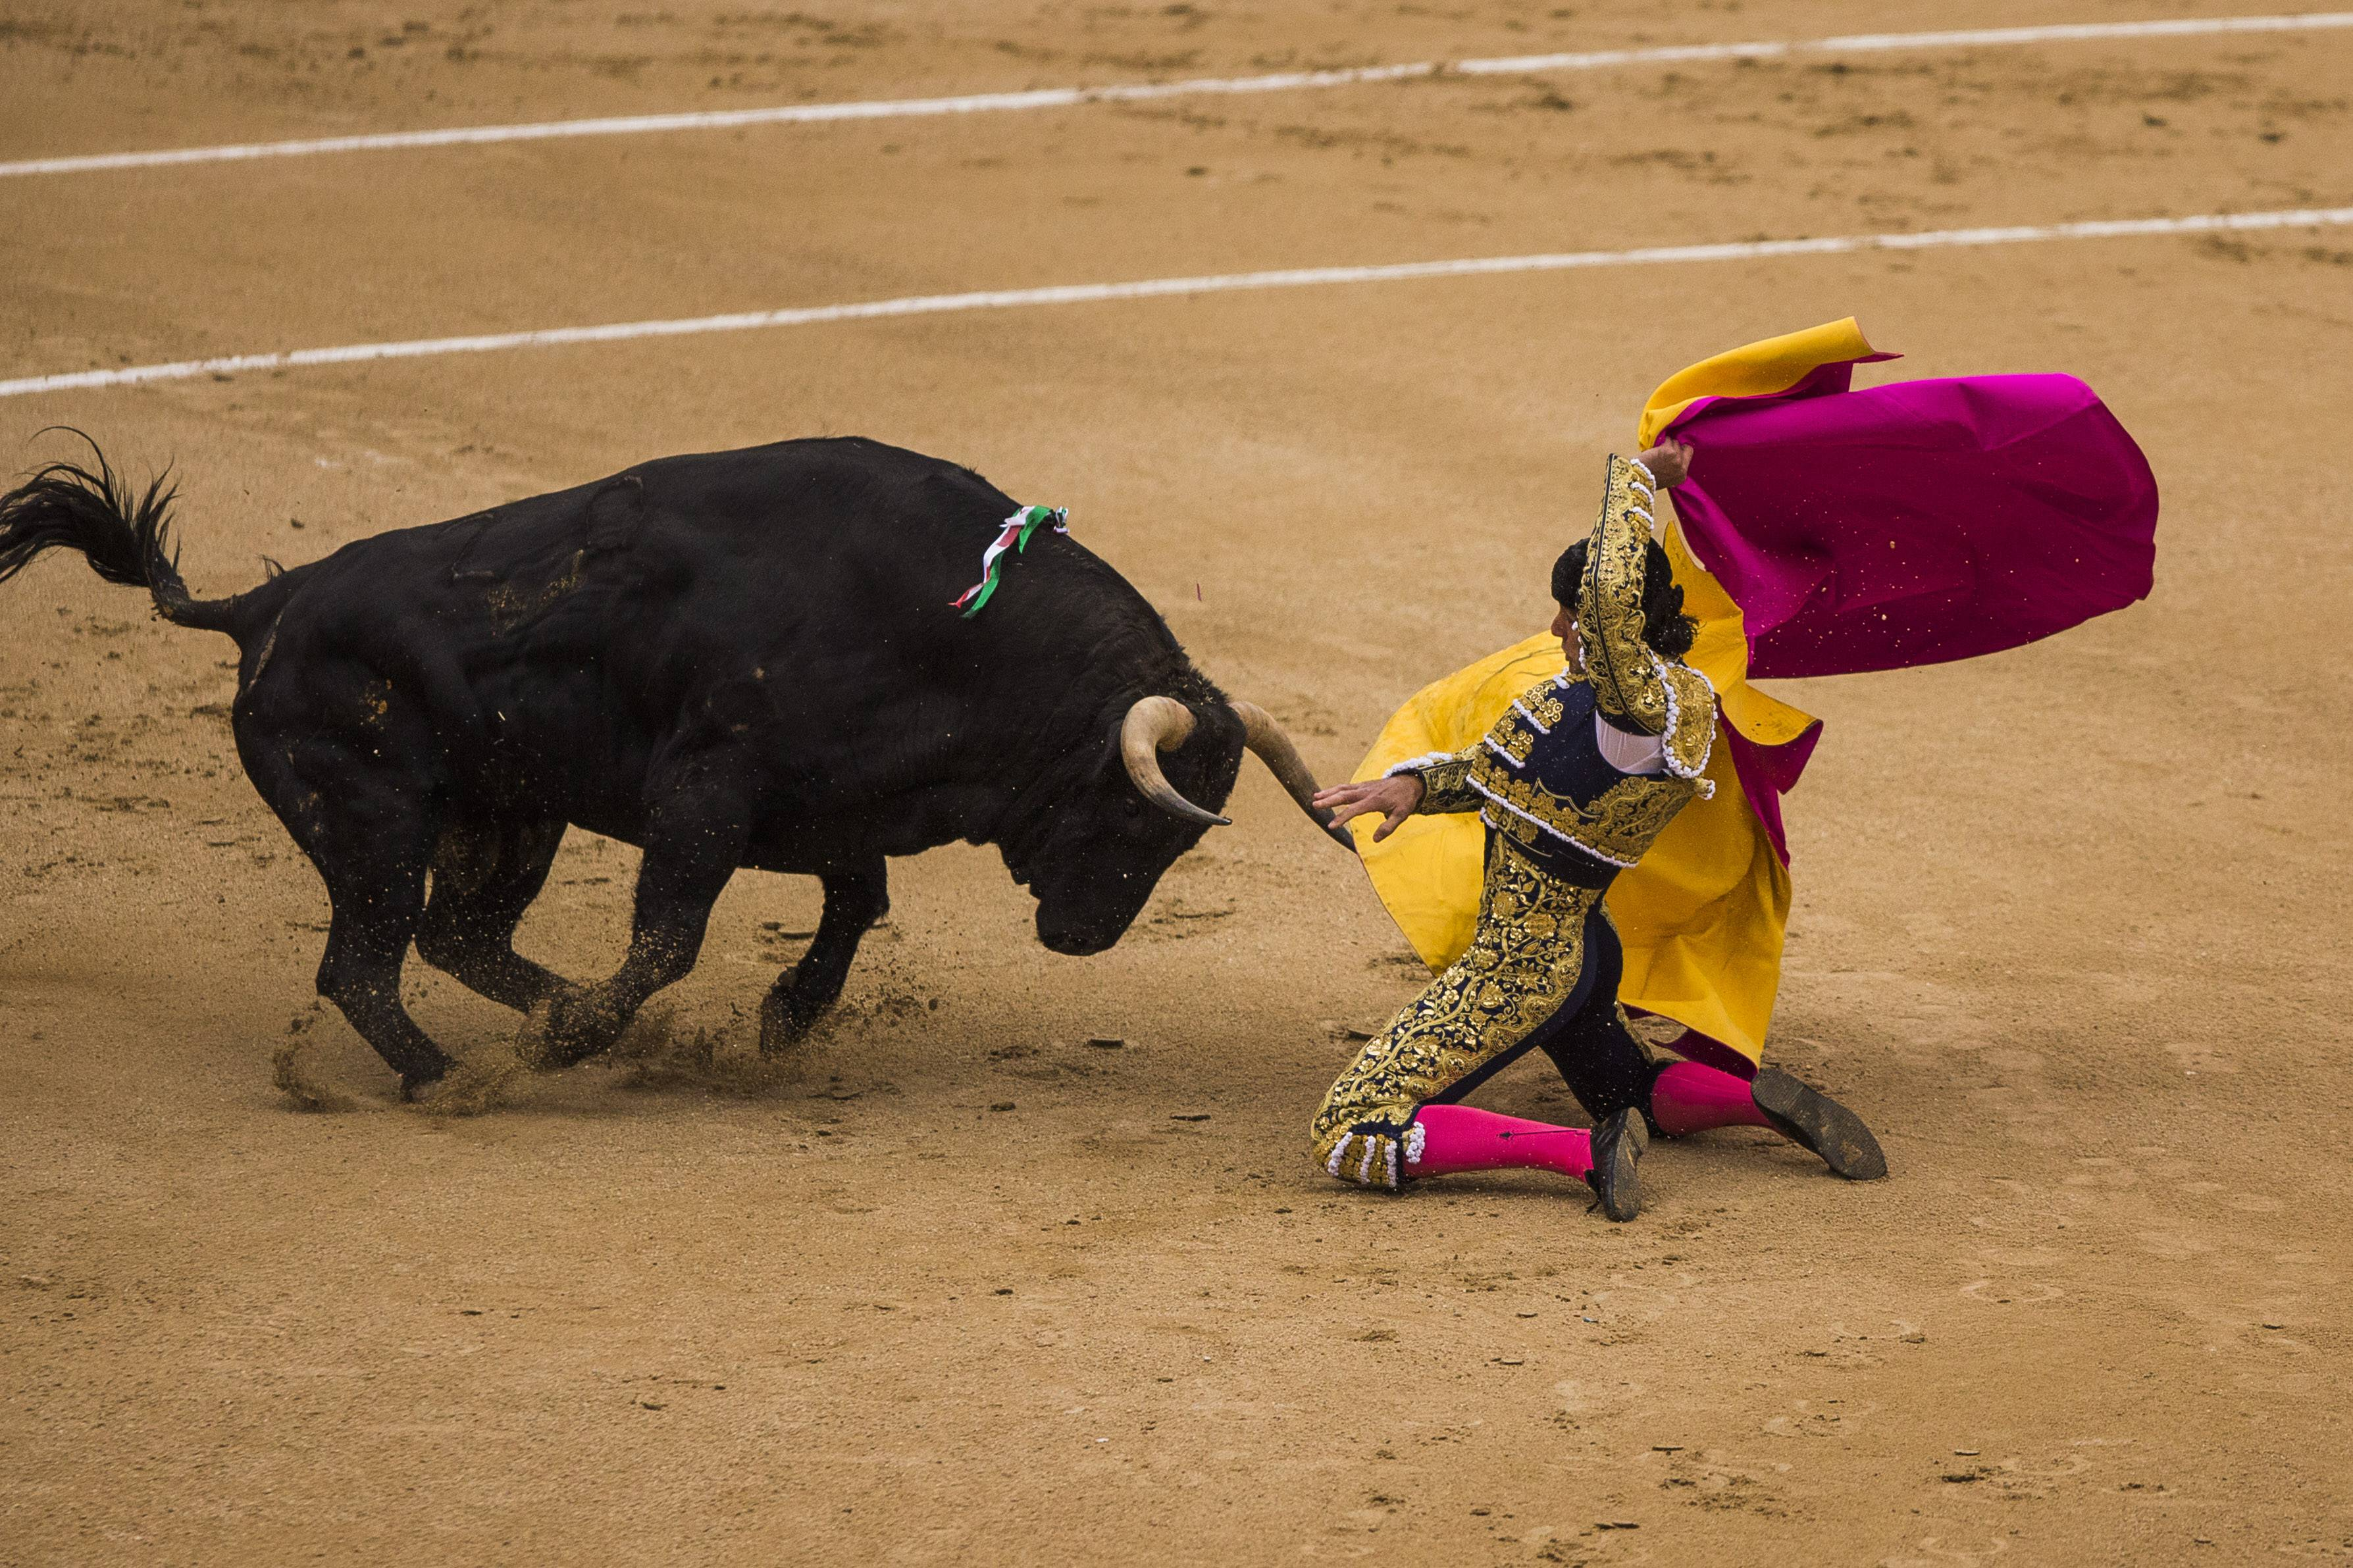 Spanish bullfighter David Mora is tossed by a El Ventorrillo ranch fighting bull during a bullfight at Las Ventas bullring in Madrid, Spain, Tuesday, May 20, 2014. Mora was still being treated in a Madrid hospital Wednesday but was said to be out of danger.